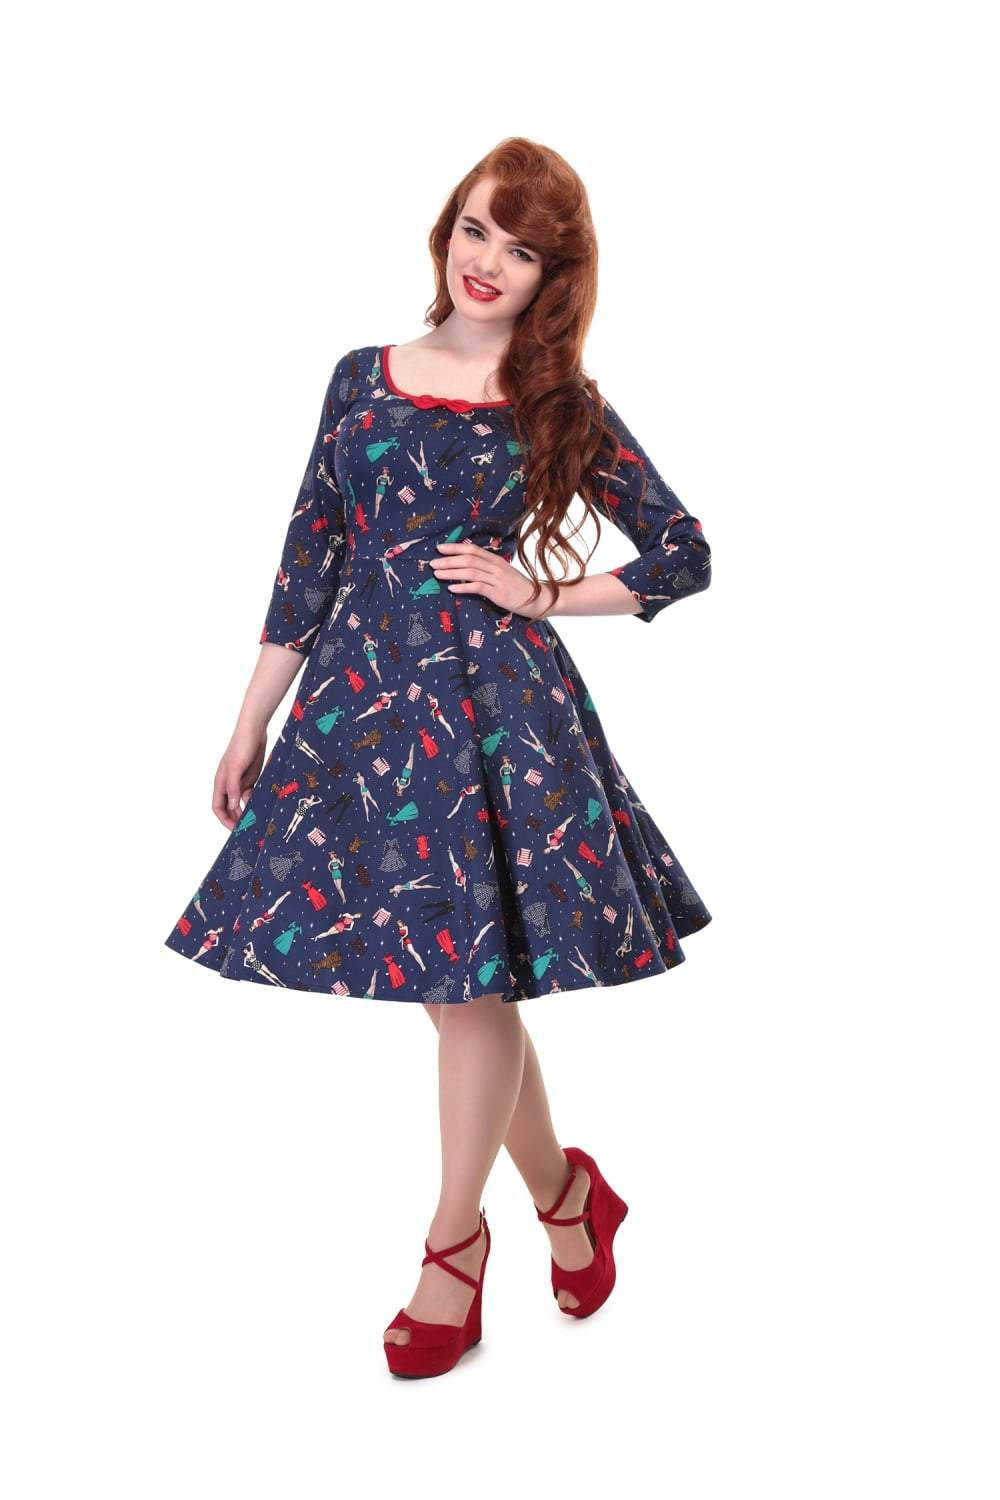 Collectif Willow Paper Pin-up Doll Dress - Bohemian Finds